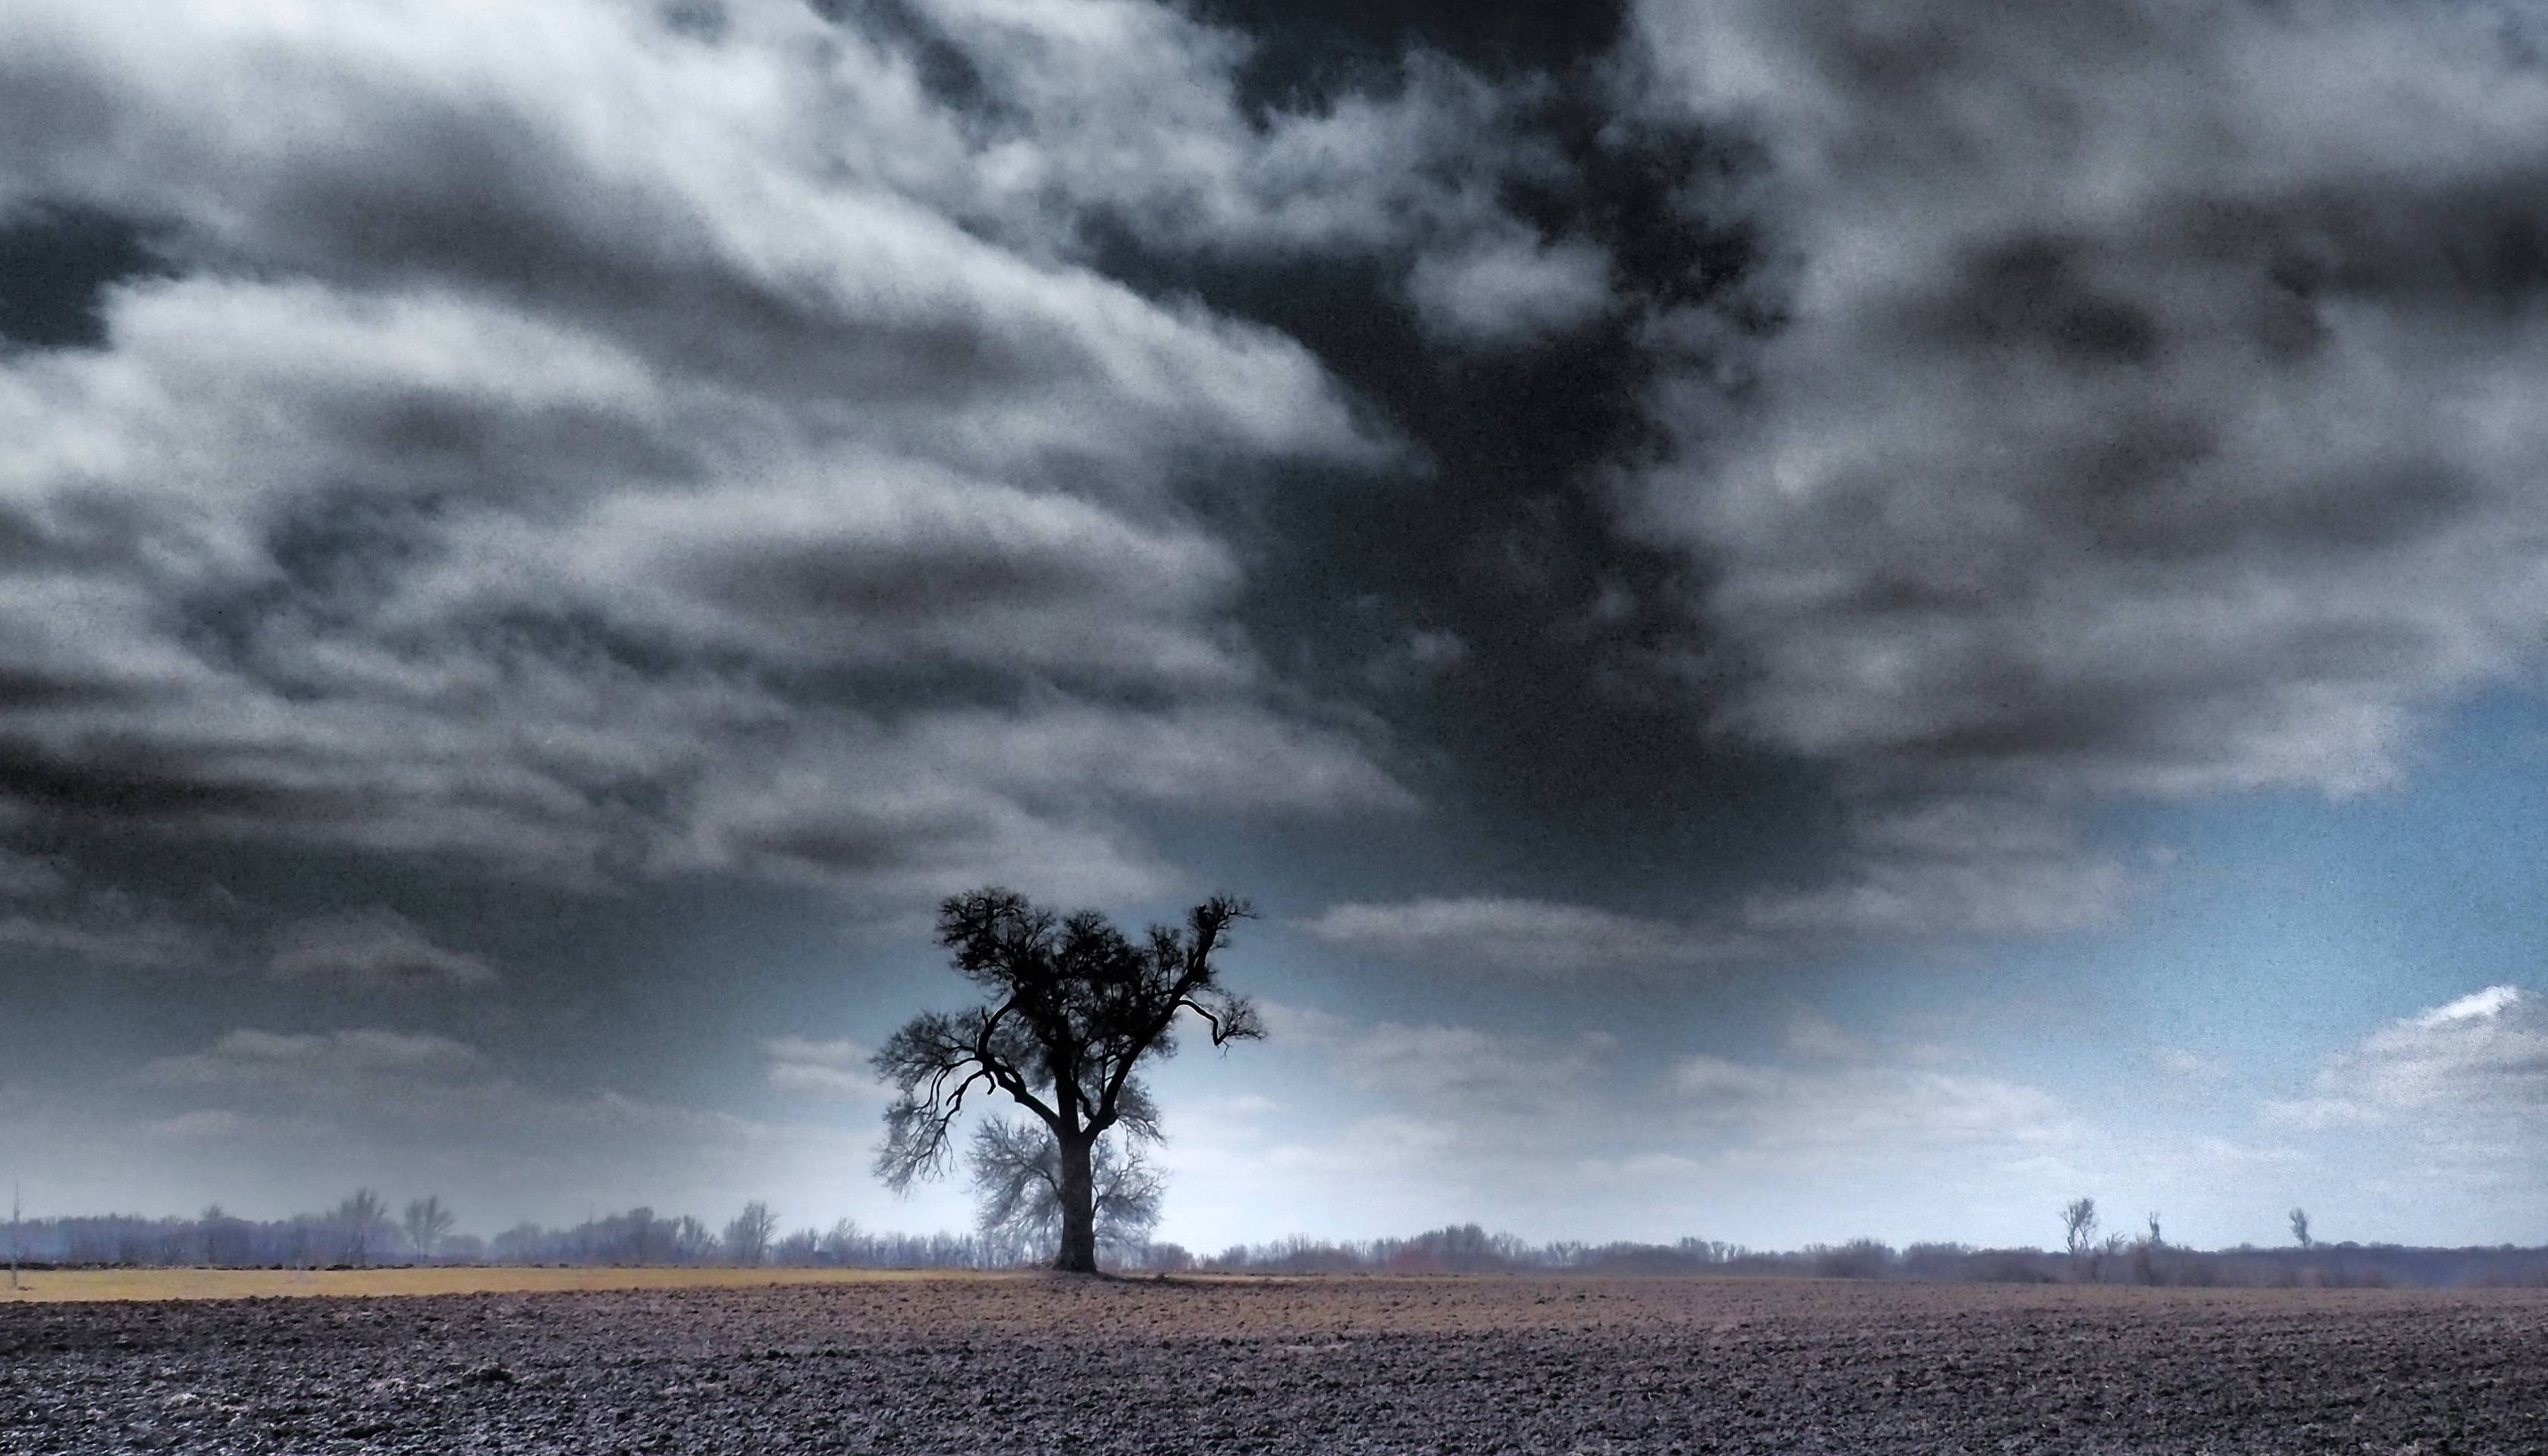 This craggy tree on the Danada Farm in Wheaton seems ready to take on Spring's angry skies when they arrive in a few weeks. Contrasts can make interesting photos. The lone tree contrasts with the barren ground. Light and dark contrast for dramatic effect. This photo was published in the Perspective column in the print edtion.